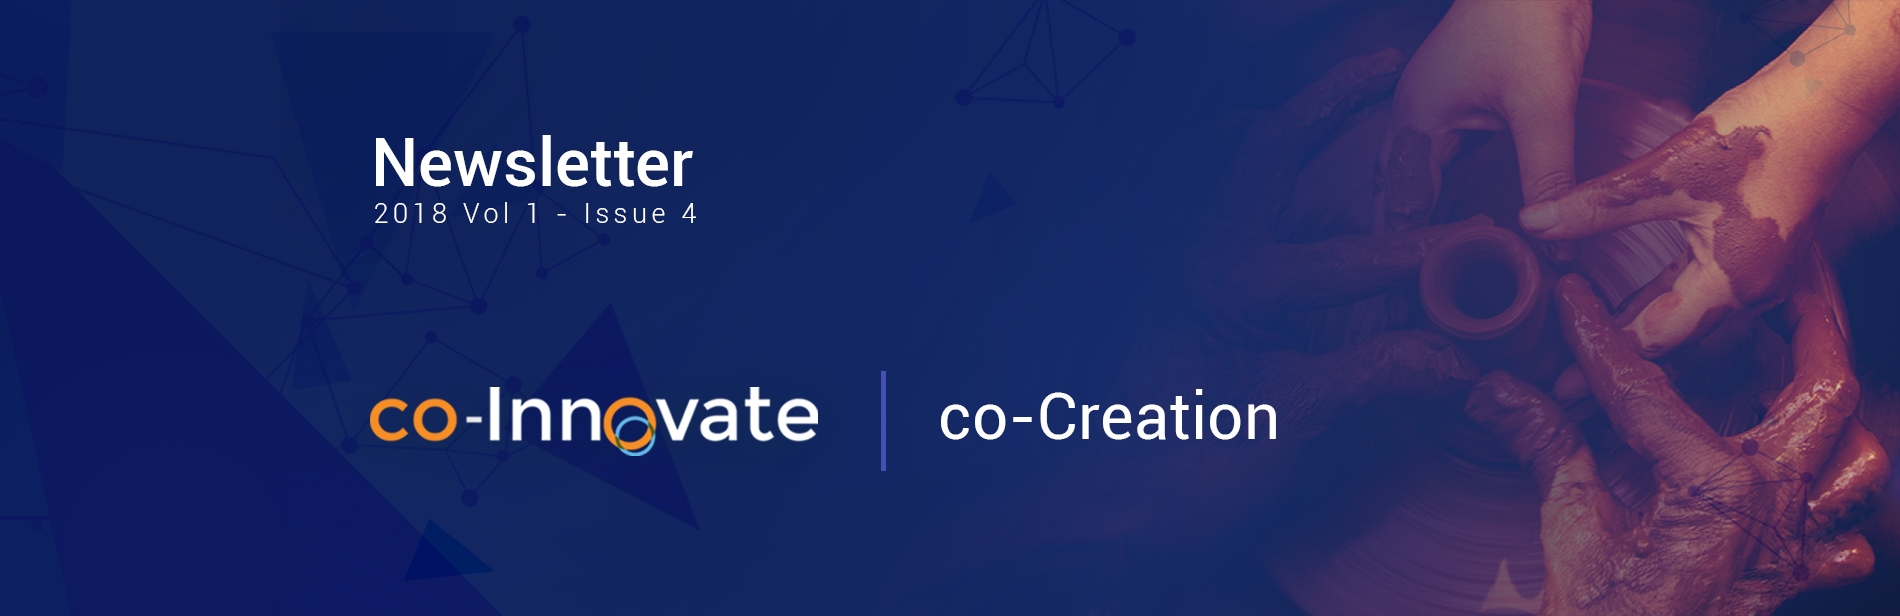 coMakeIT | co-Innovate Newsletter 2018 Vol 1 – Issue 4